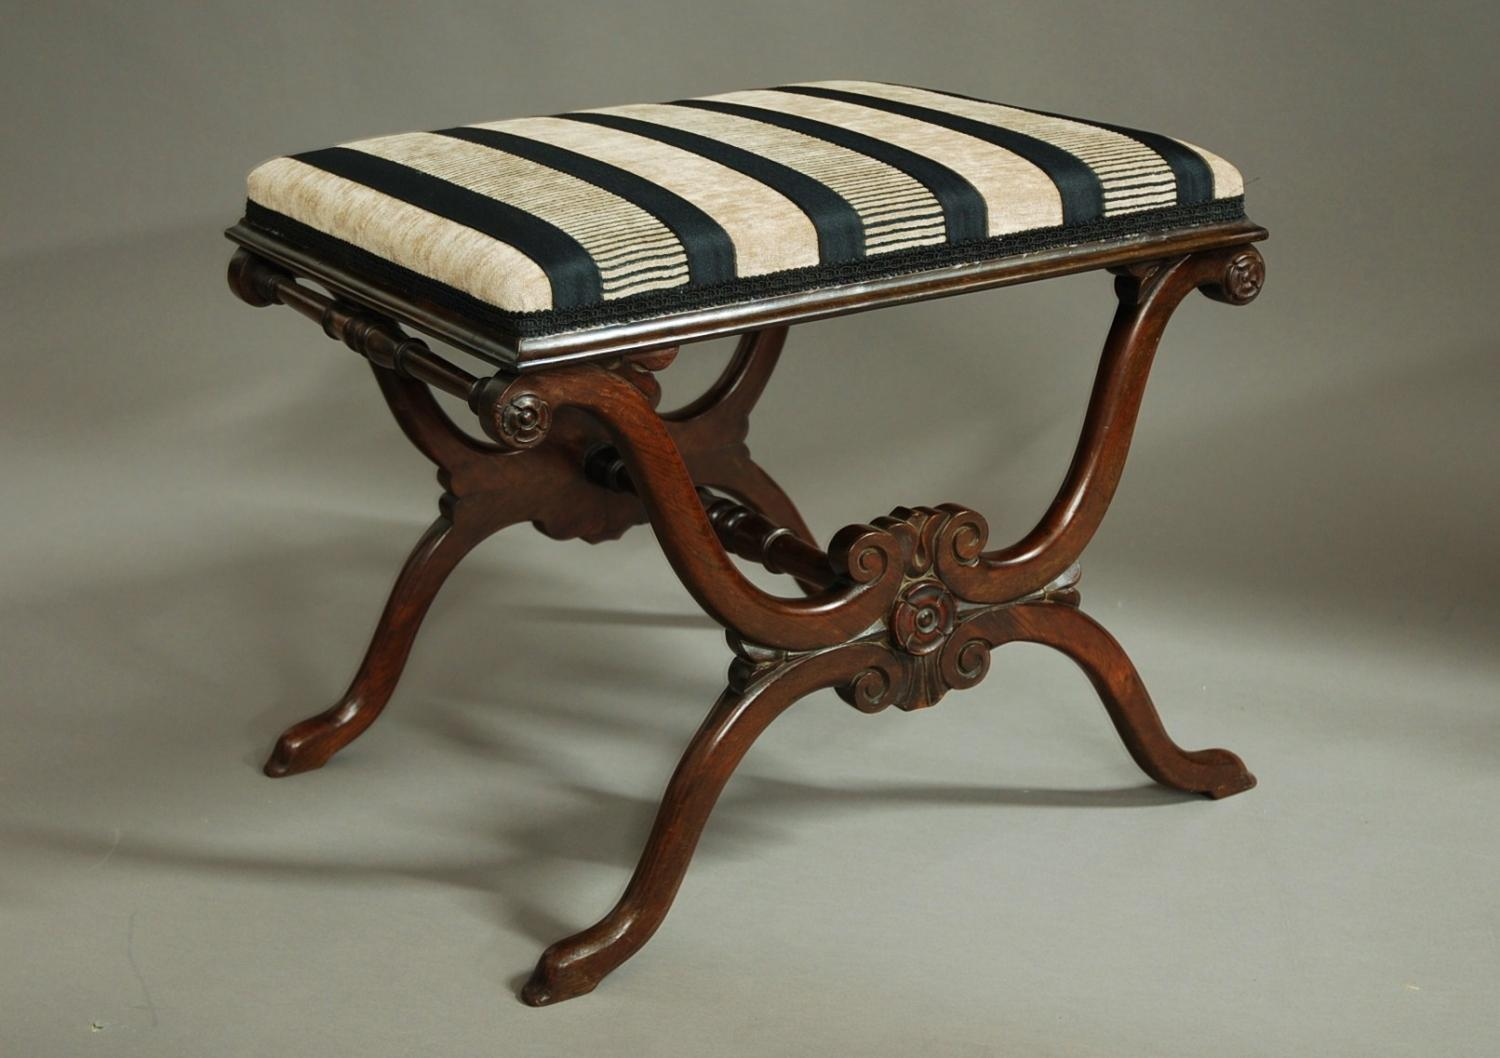 19thc rosewood X-frame stool of fine quality